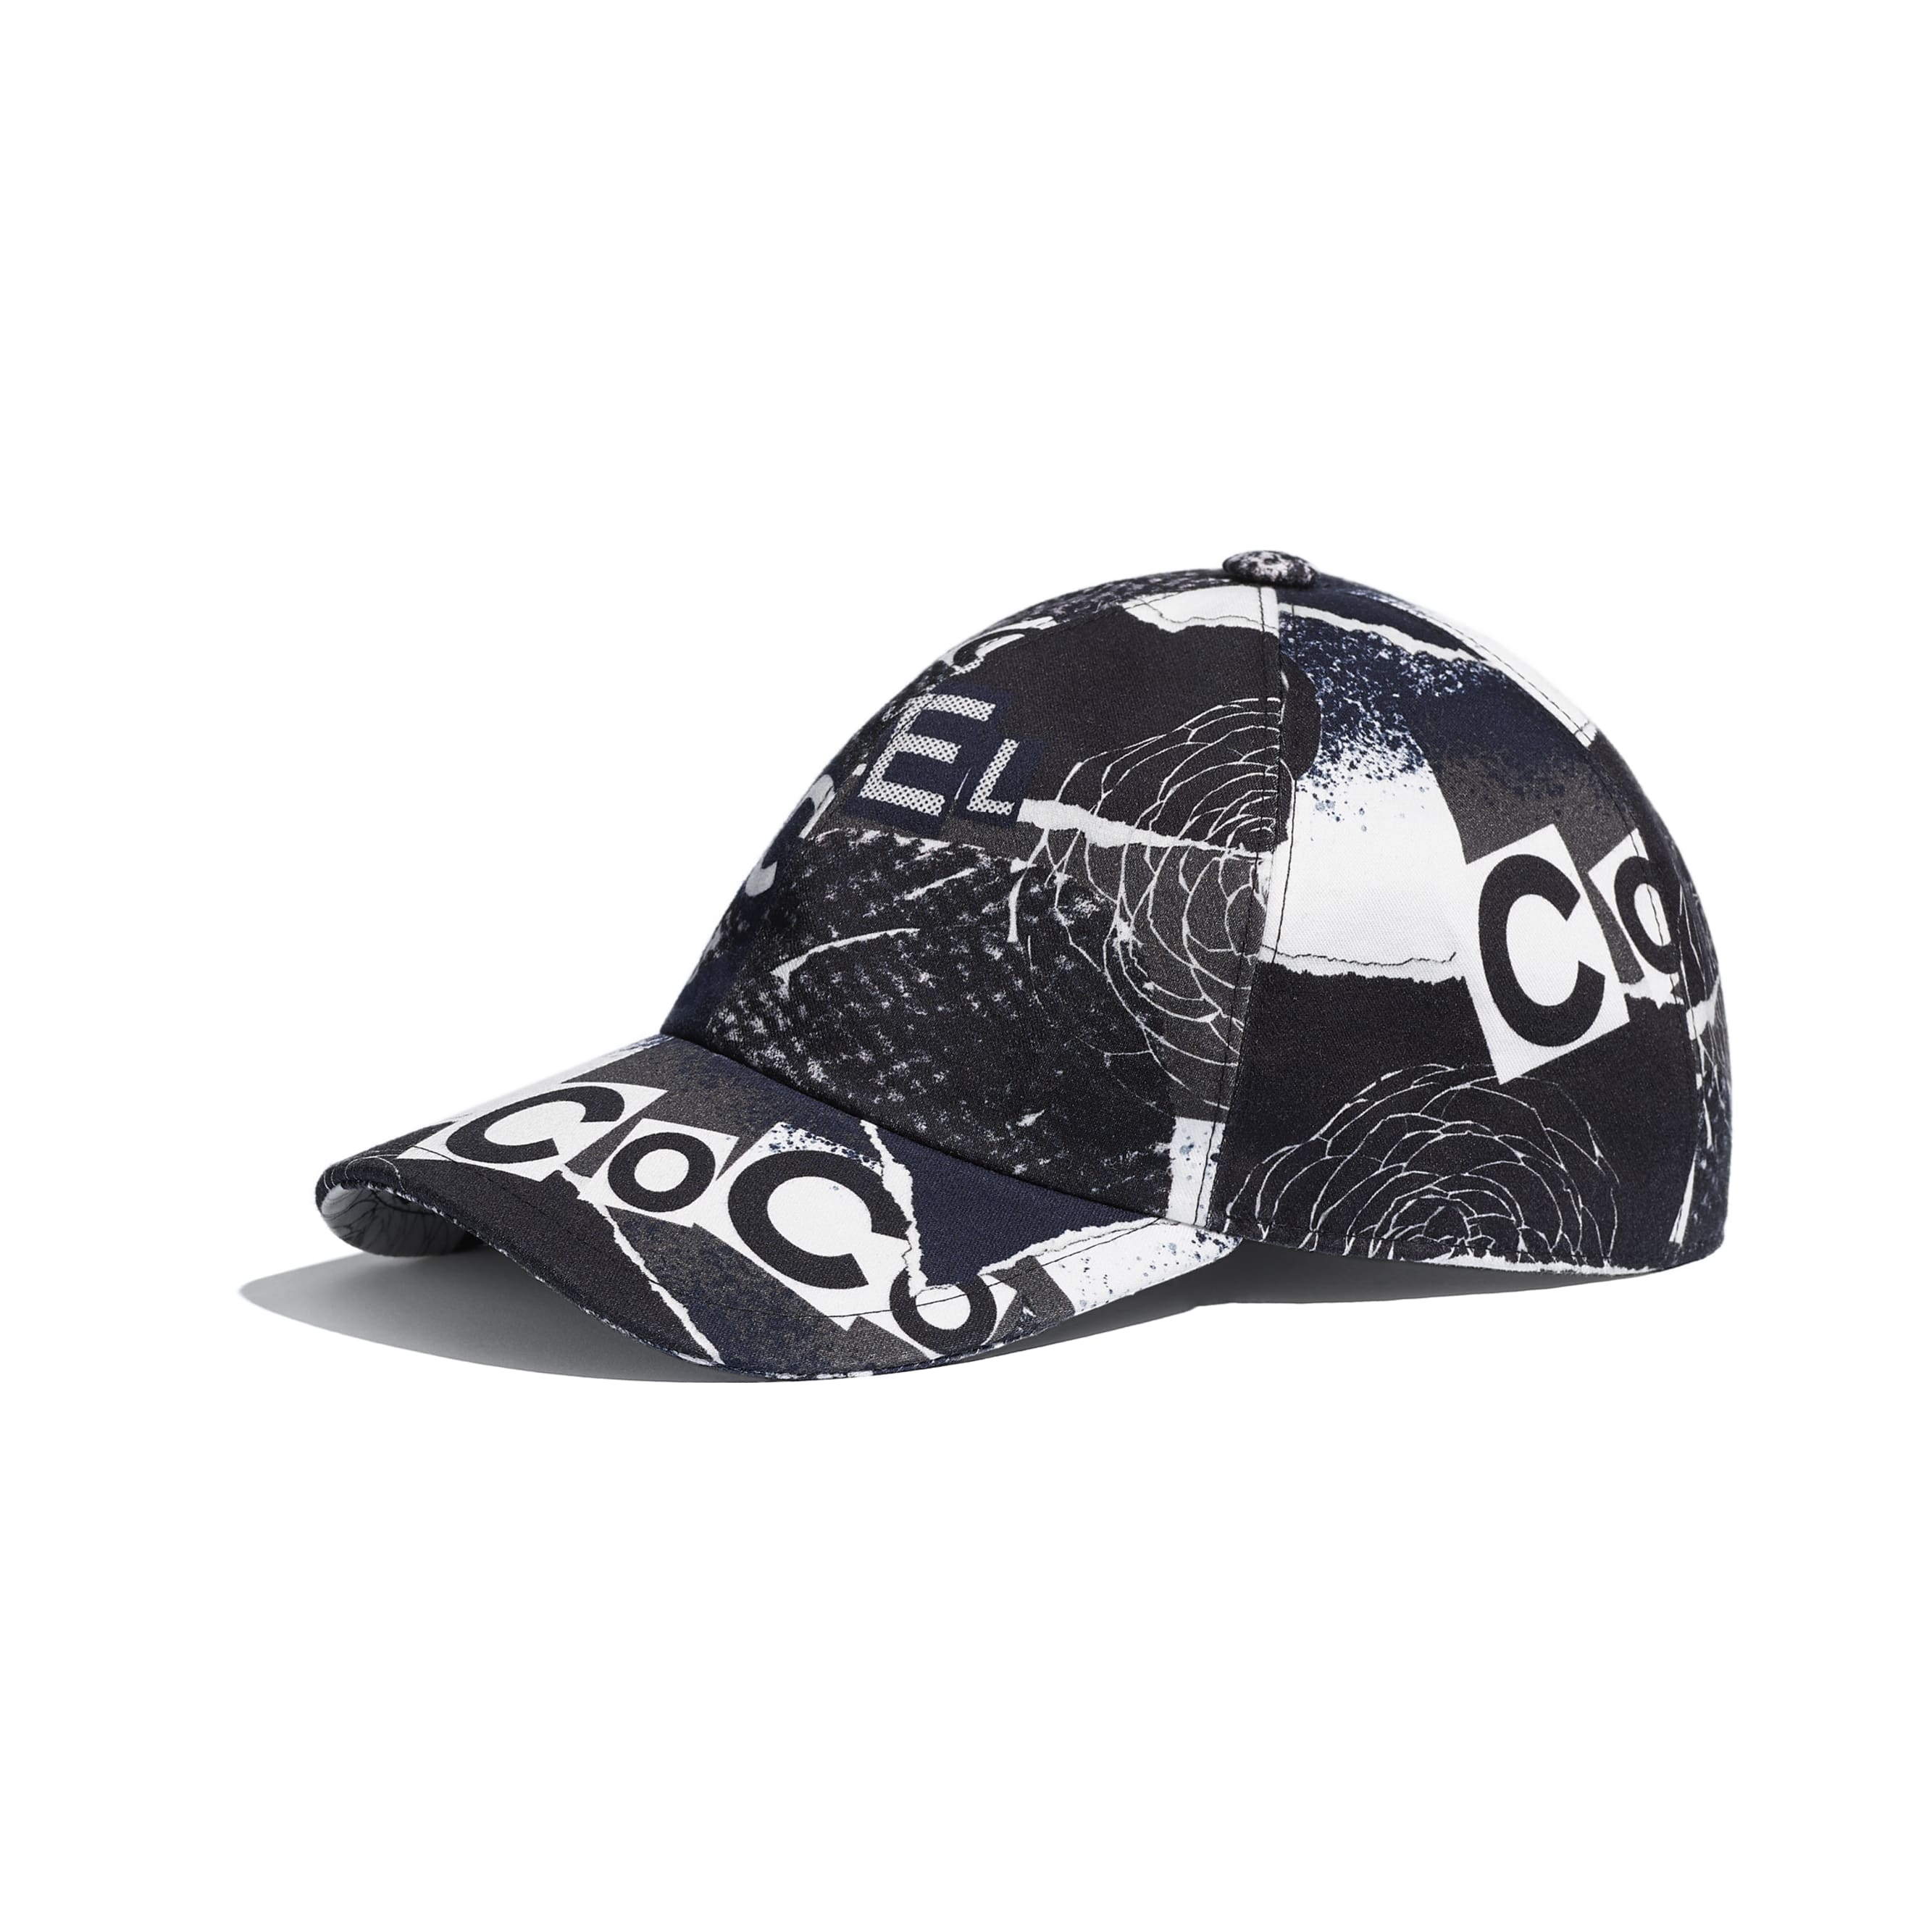 Cap - Navy Blue, White, Black & Gray - Cotton - Default view - see standard sized version